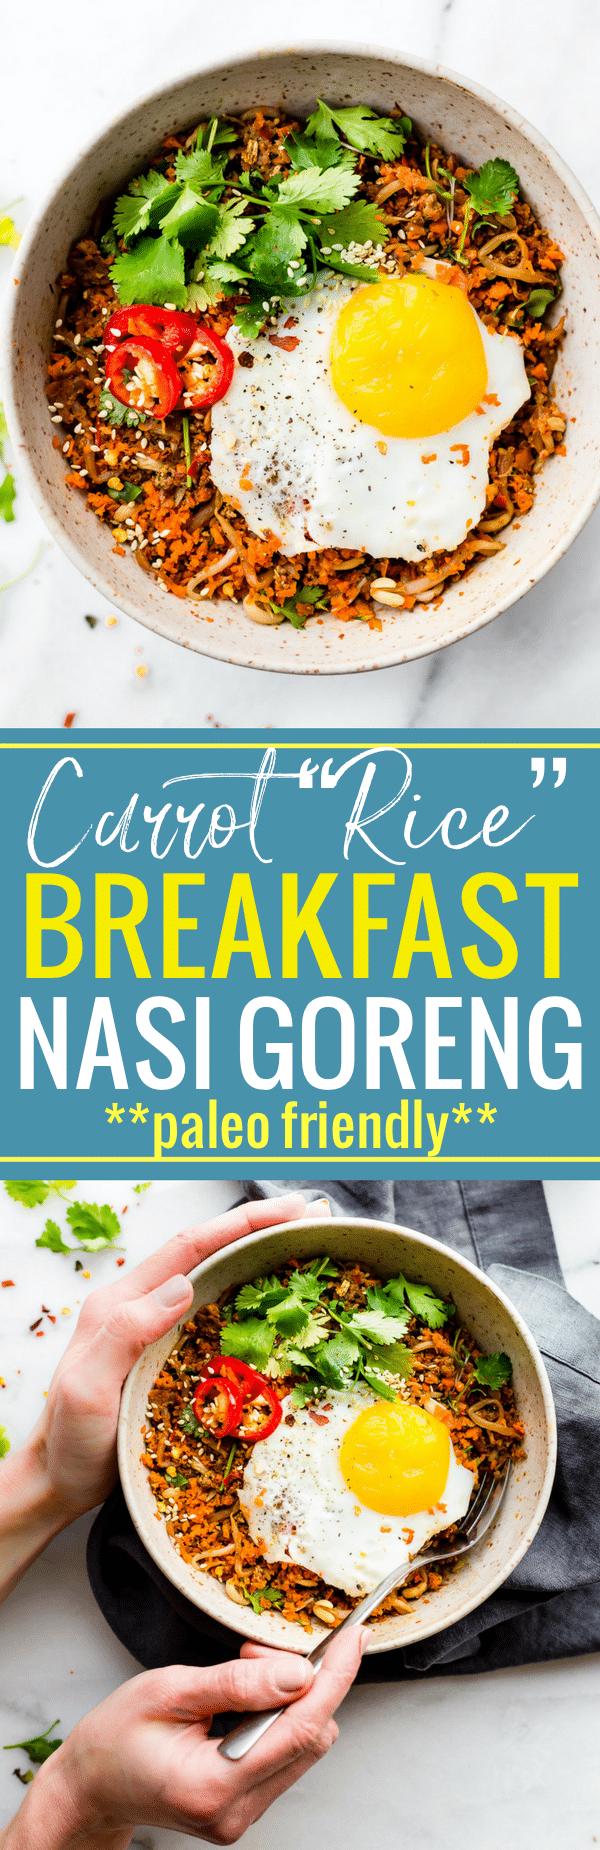 "This Quick Carrot Rice Breakfast Nasi Goreng is the perfect way to utilize those leftover veggies! A stir fried ""carrot rice"" mixed with egg and sausage. A Indonesian style breakfast Nasi Goreng that's paleo friendly, super flavorful, and packed full of protein and veggies! Cook and serve all in 30 minutes! www.cottercrunch.com"